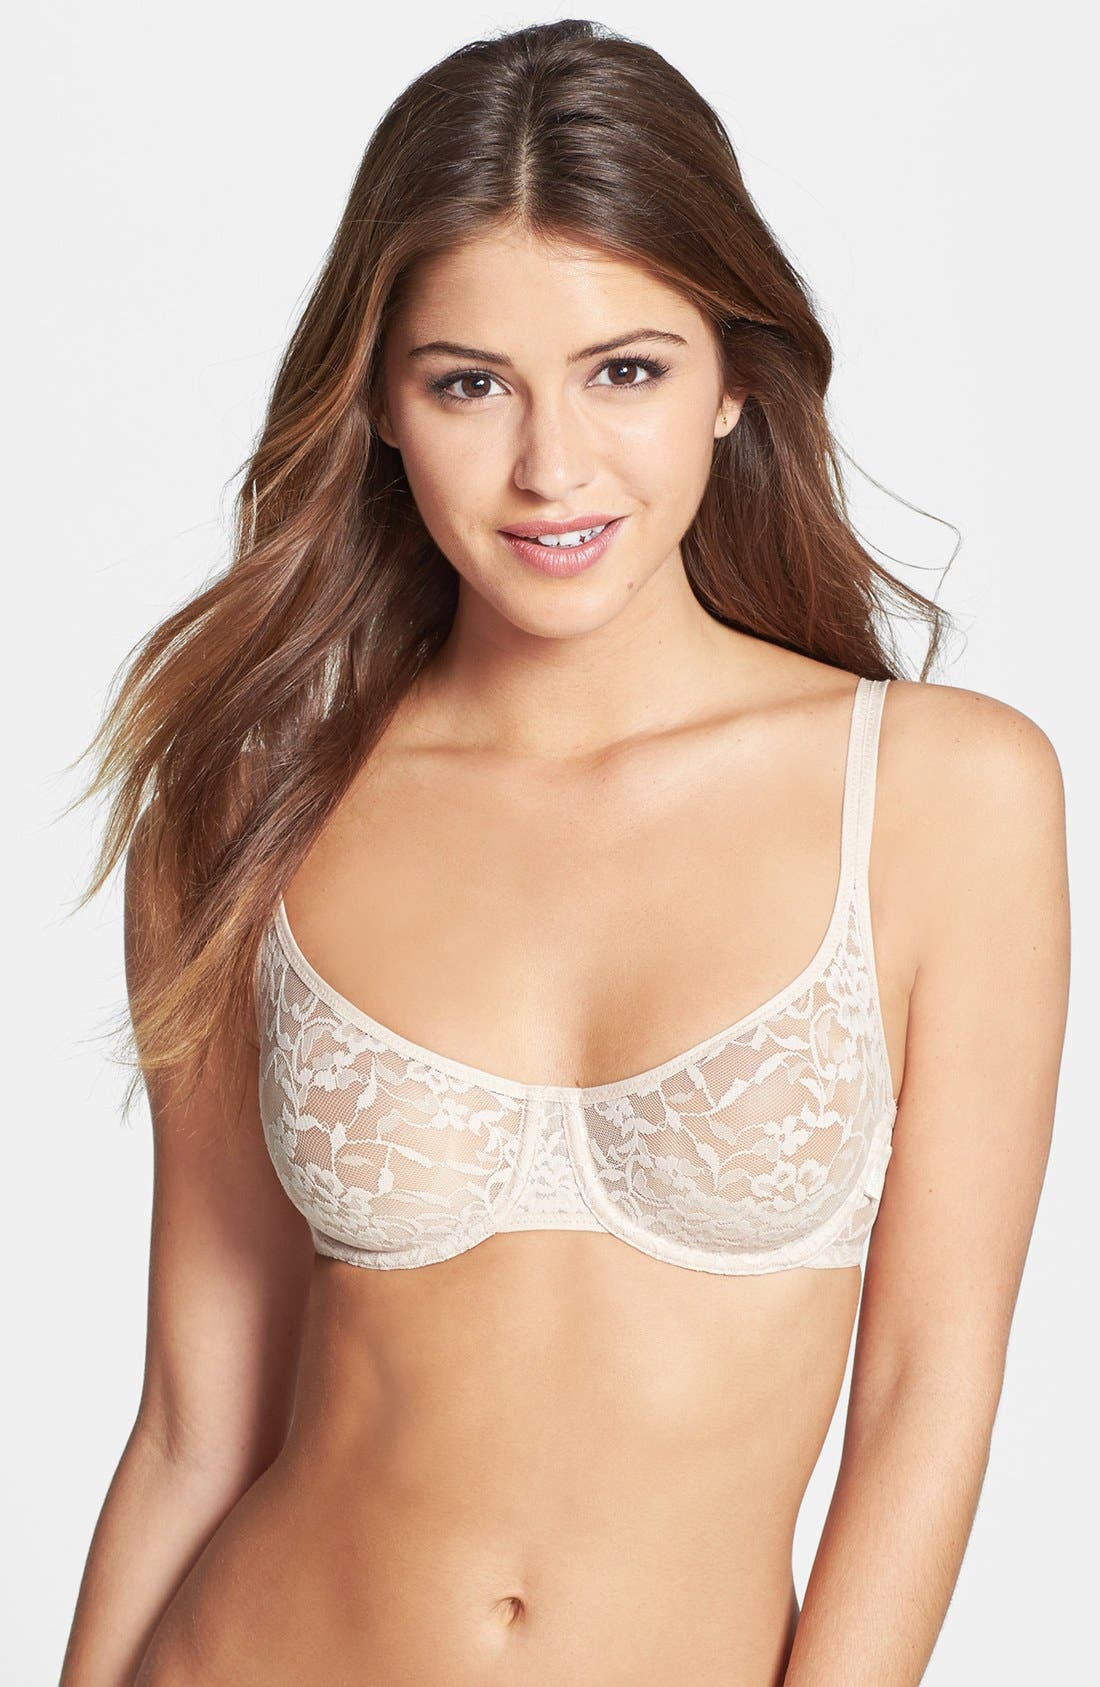 Main Image - DKNY 'Signature Lace' Unlined Underwire Demi Bra